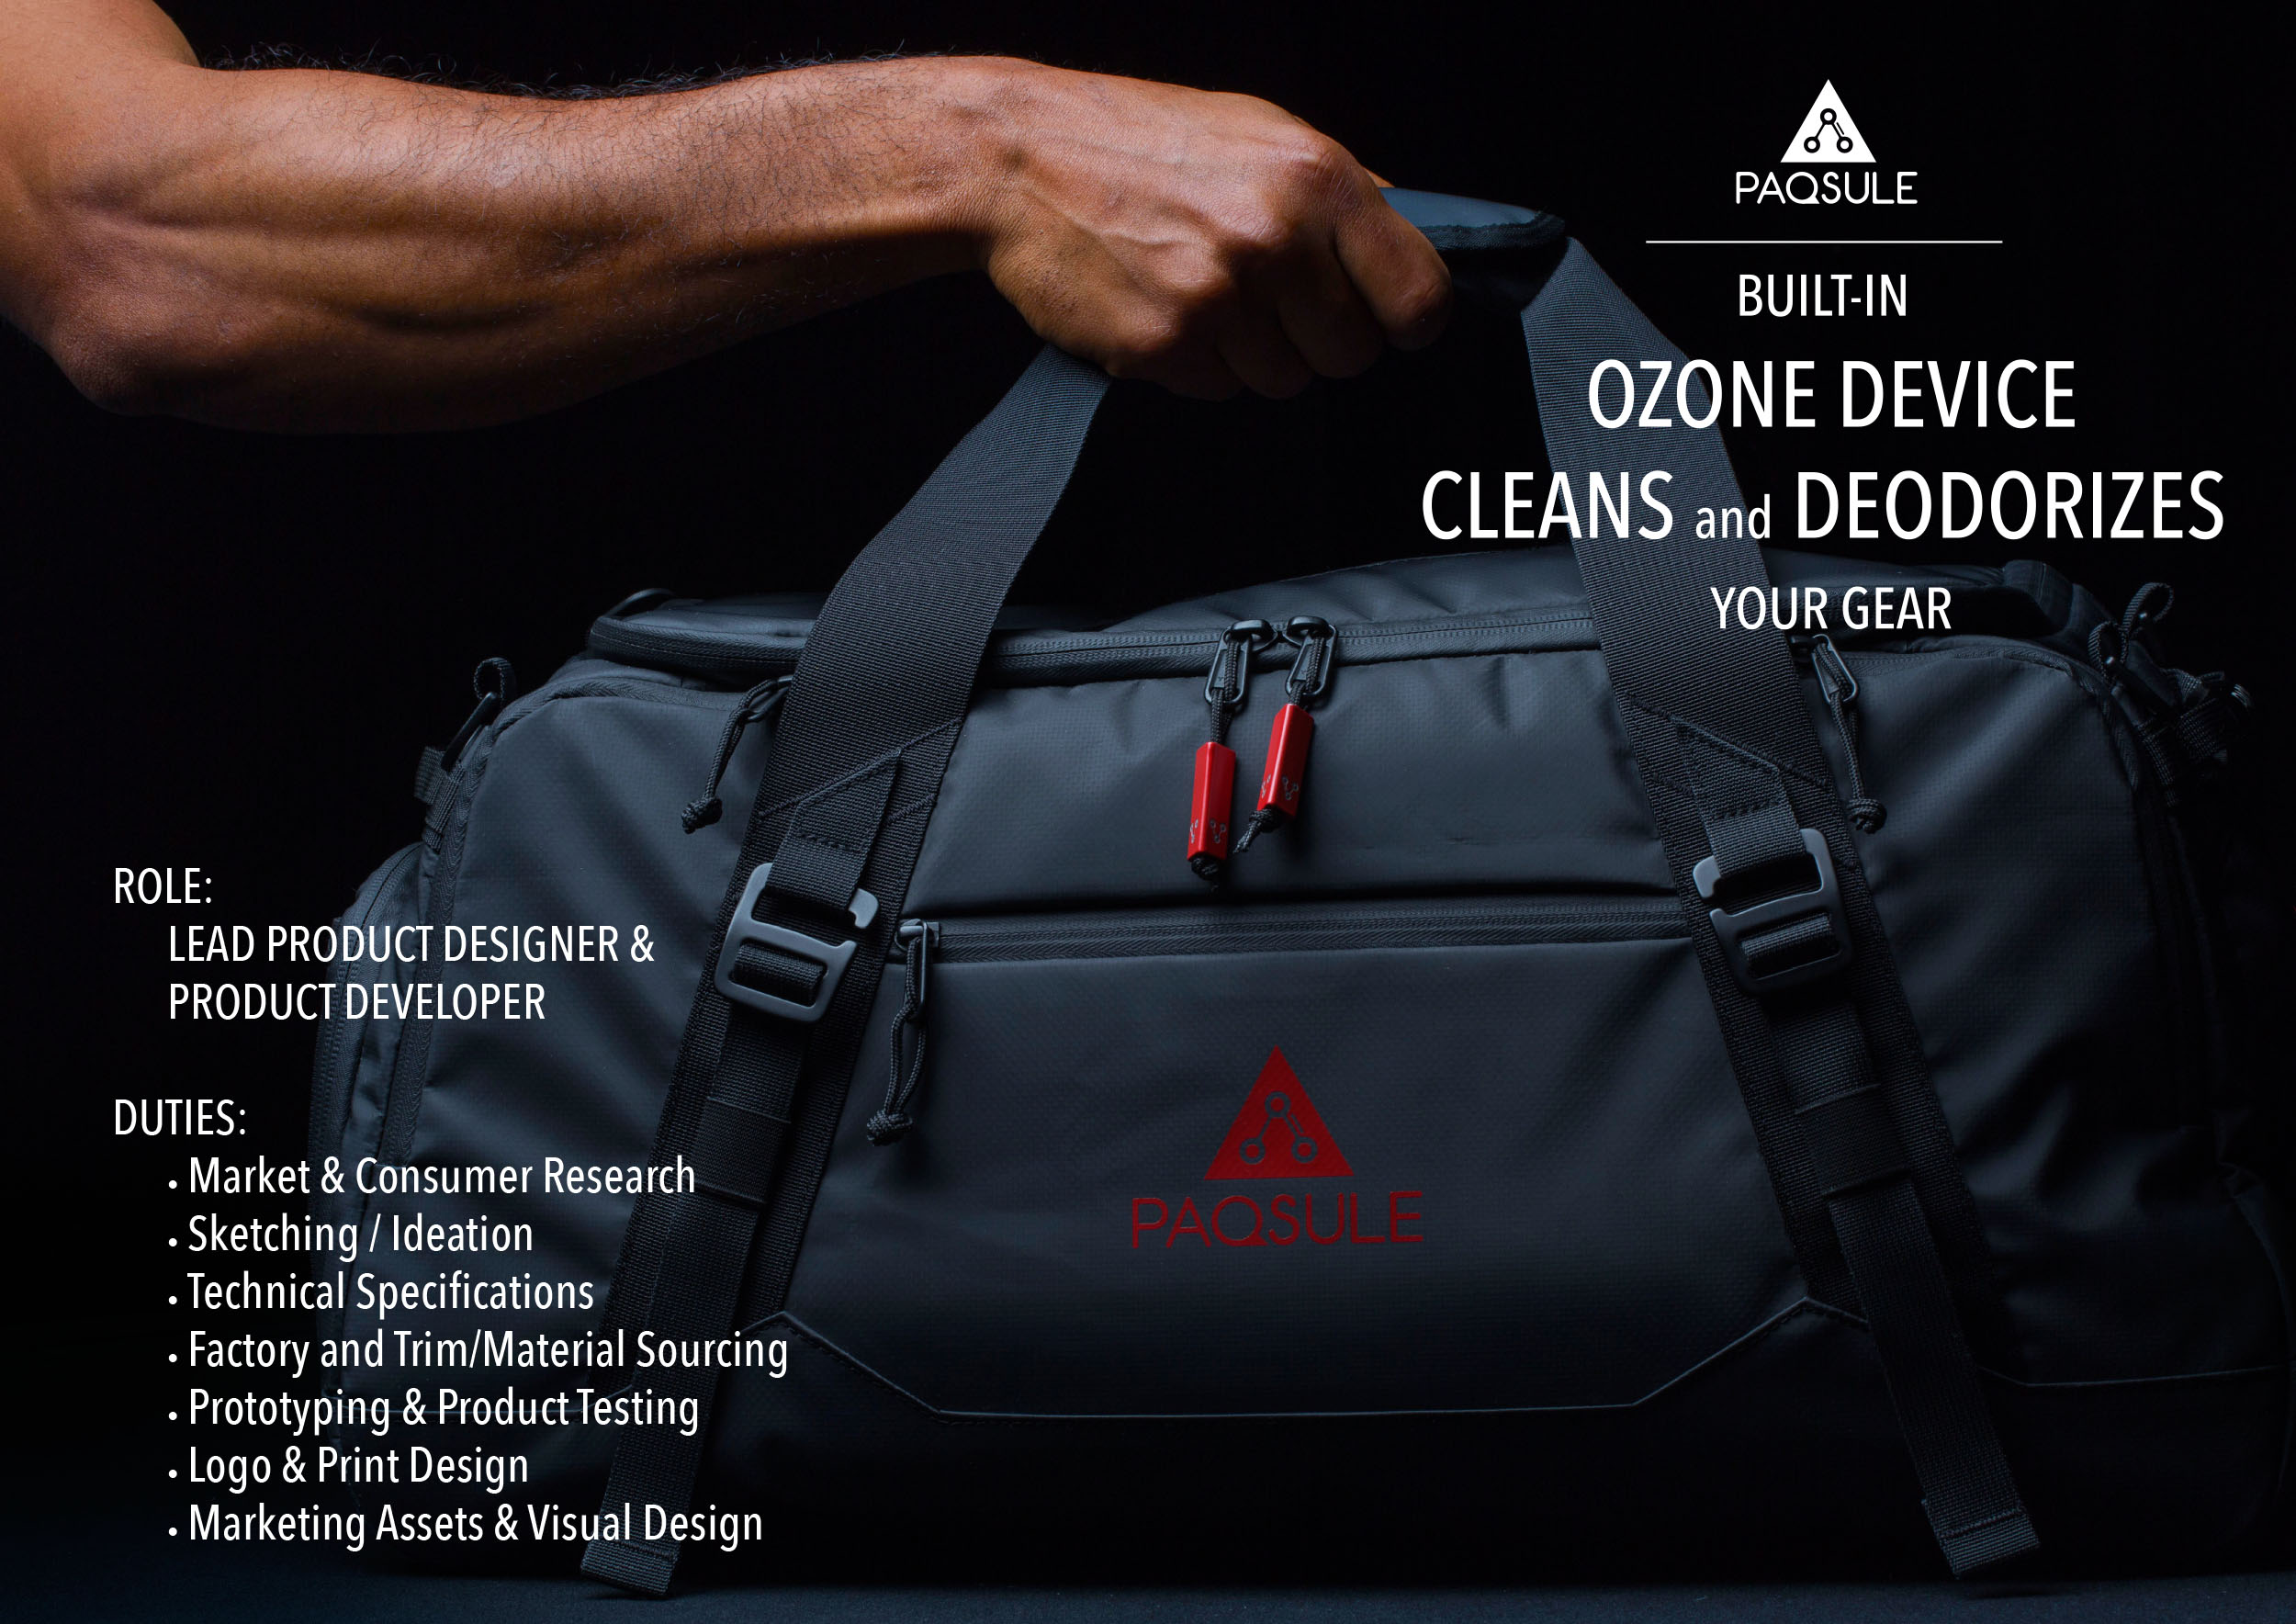 Paqsule Duffle Product Design